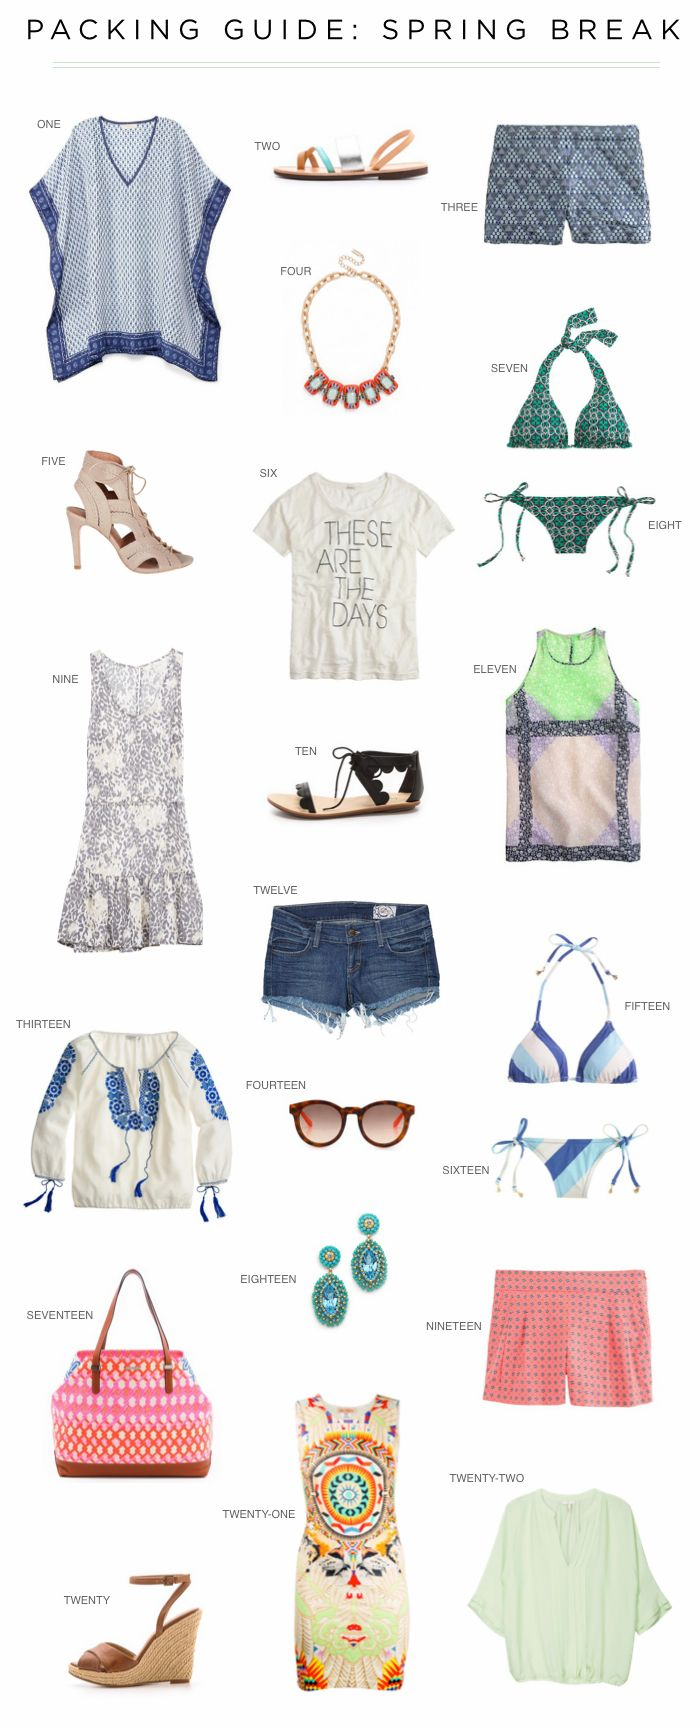 Packing Guide: Spring Break - Love You, Mean It